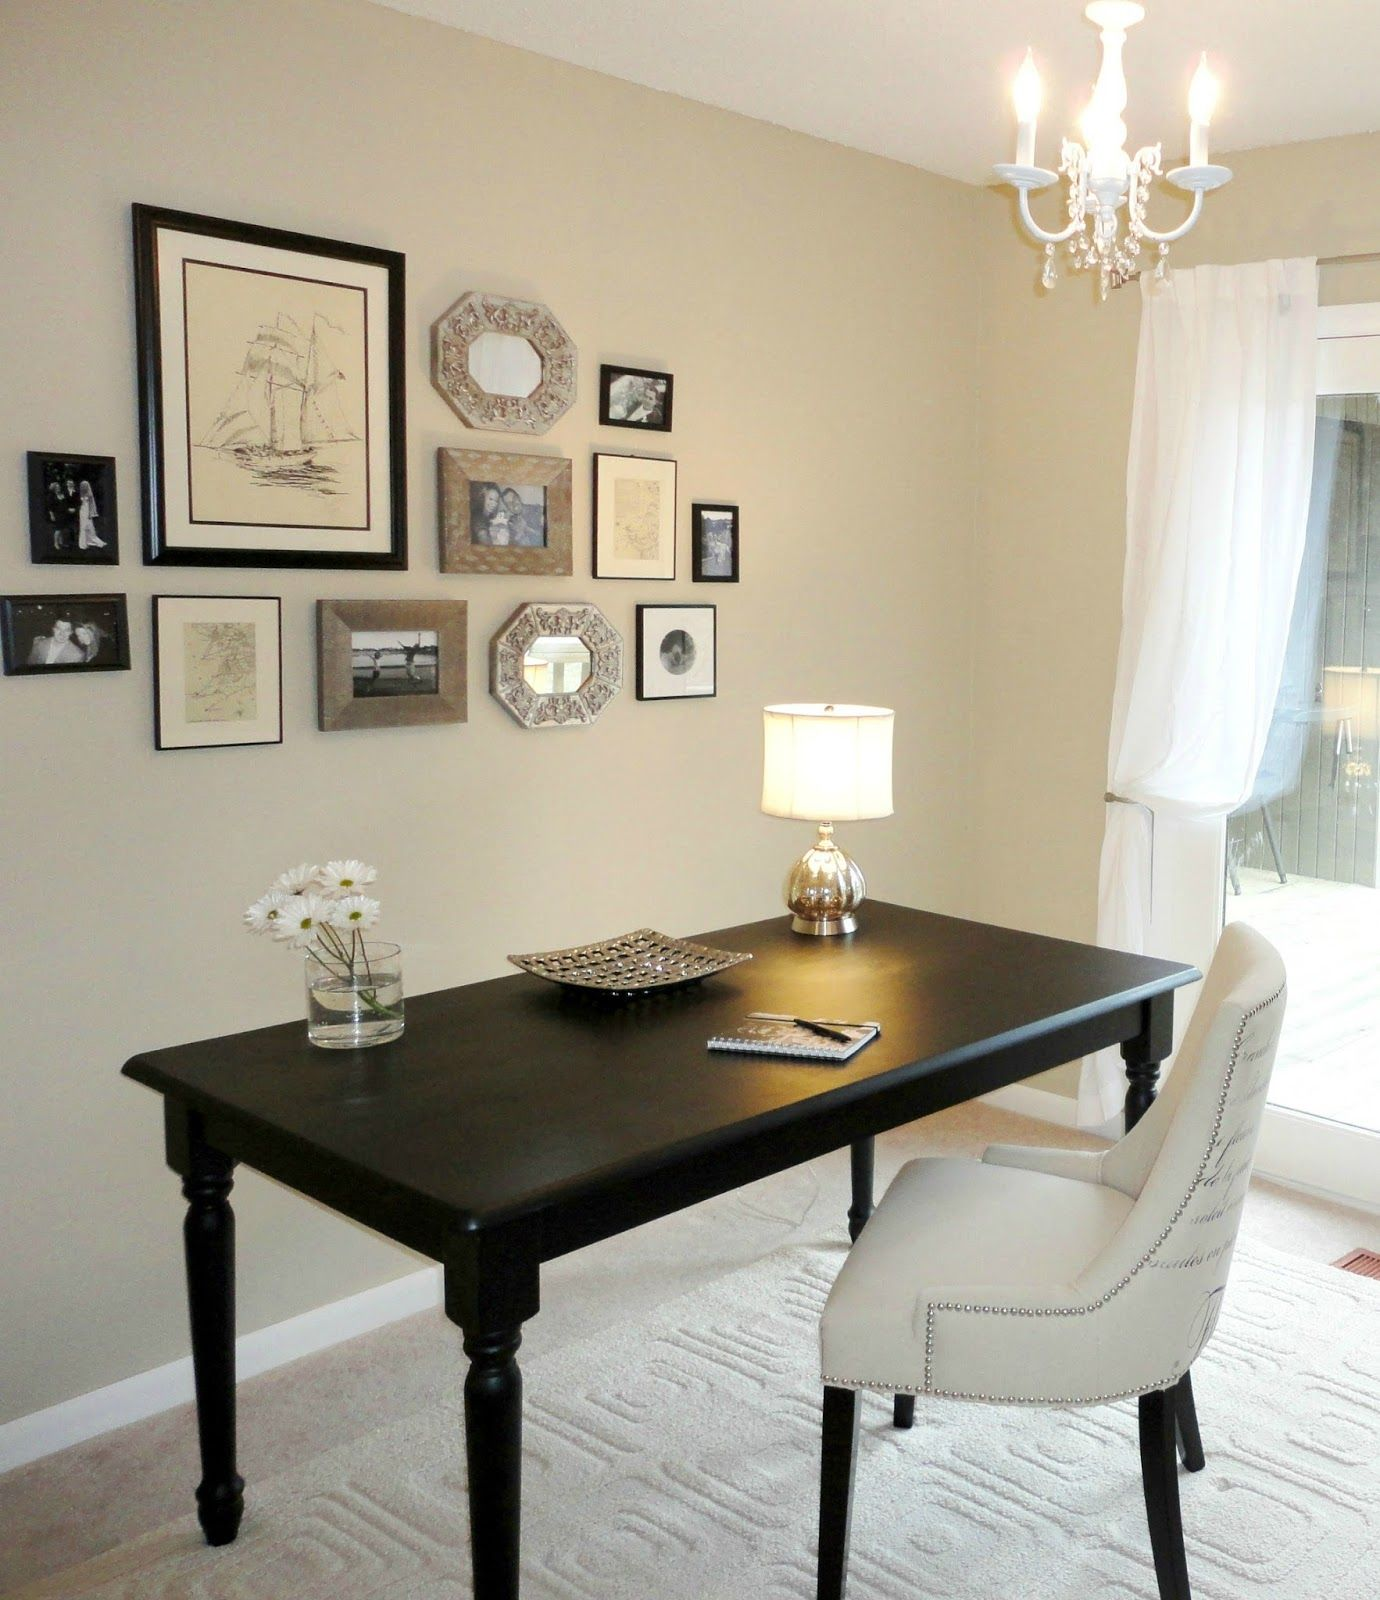 50 Amazing Budget Decorating Tips Everyone Should Know! I